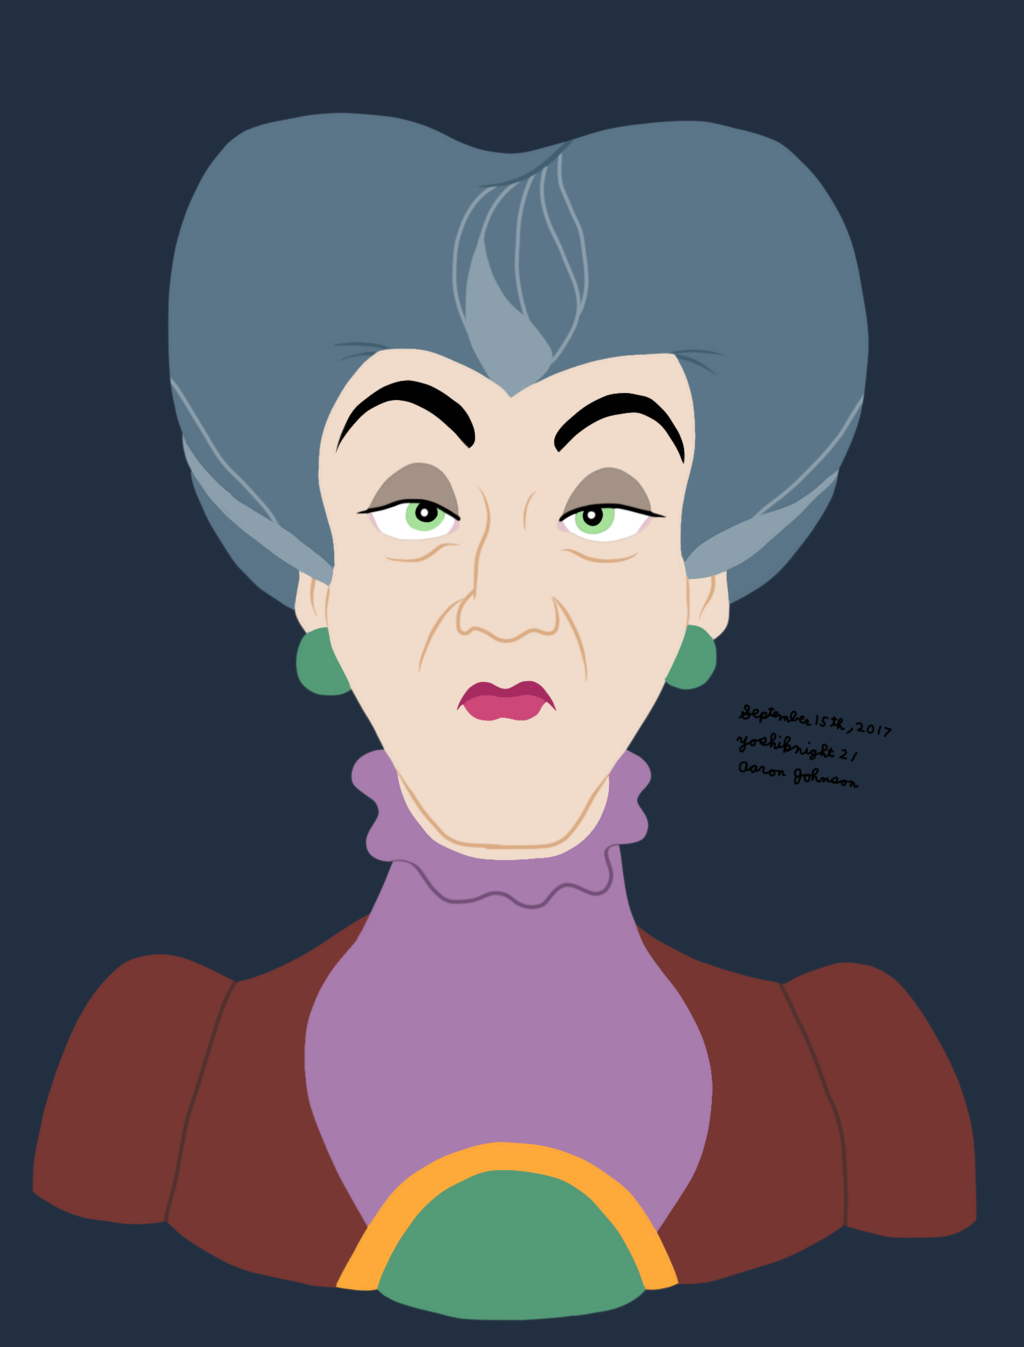 Most recent image: Lady Tremaine (Disney)